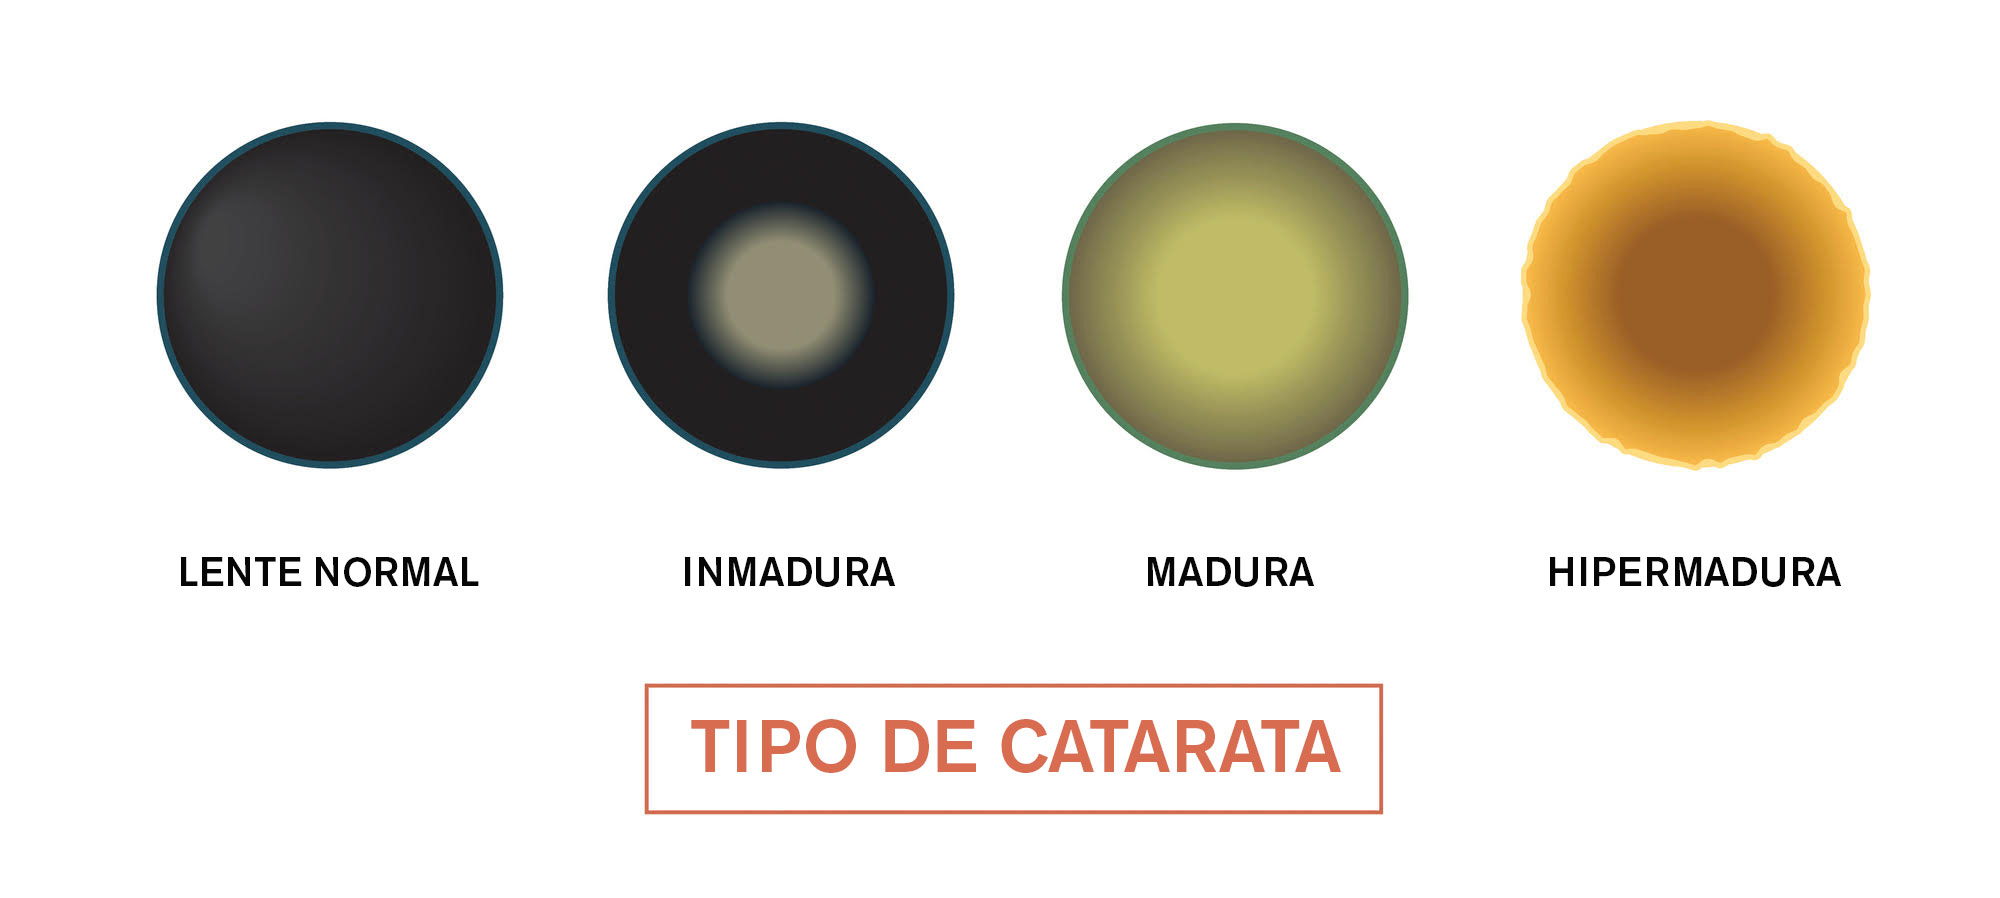 Tipo de Catarata - illustrazione